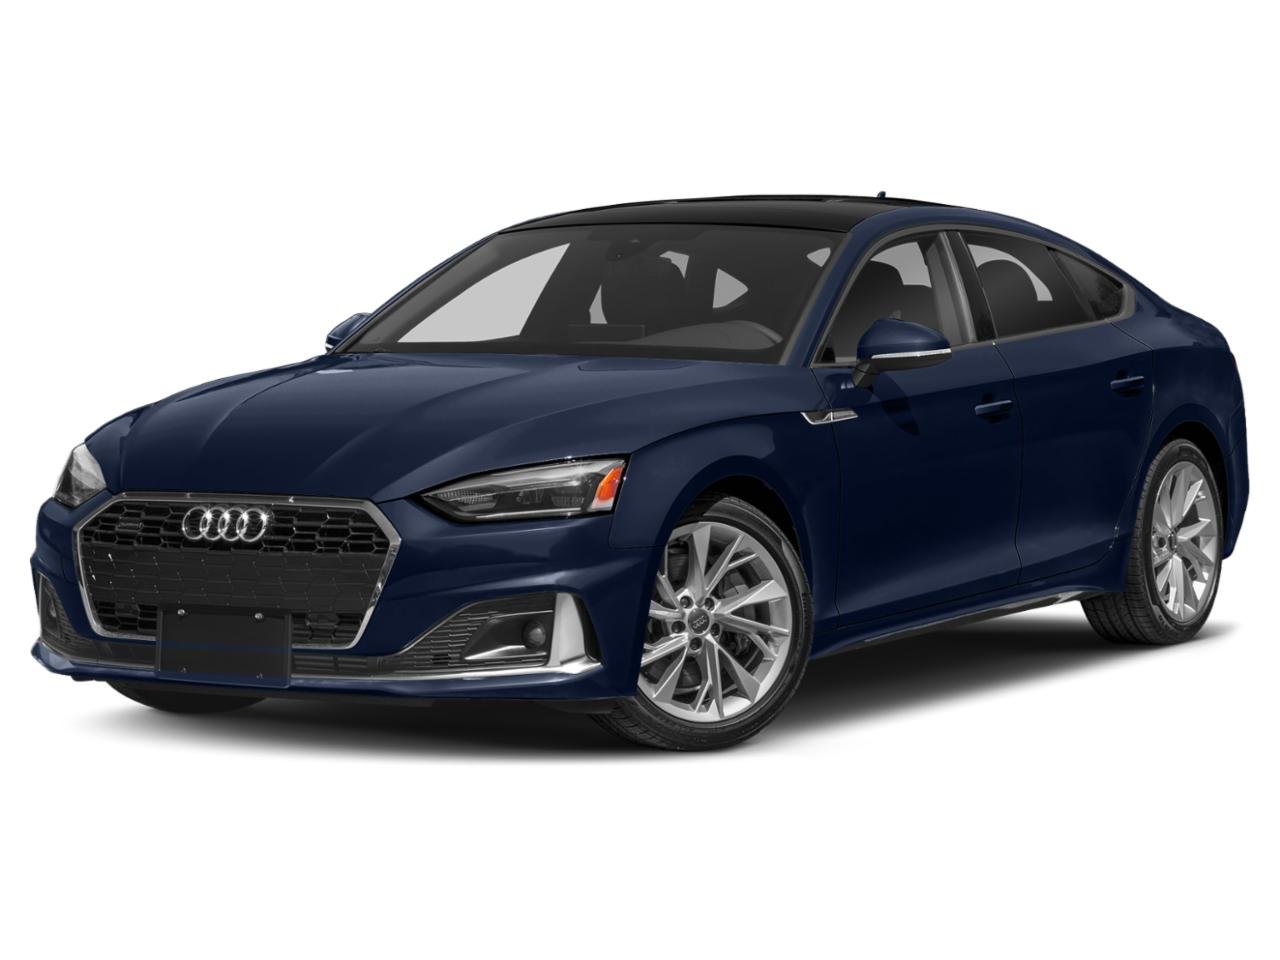 2021 Audi A5 Sportback Vehicle Photo in McKinney, TX 75070